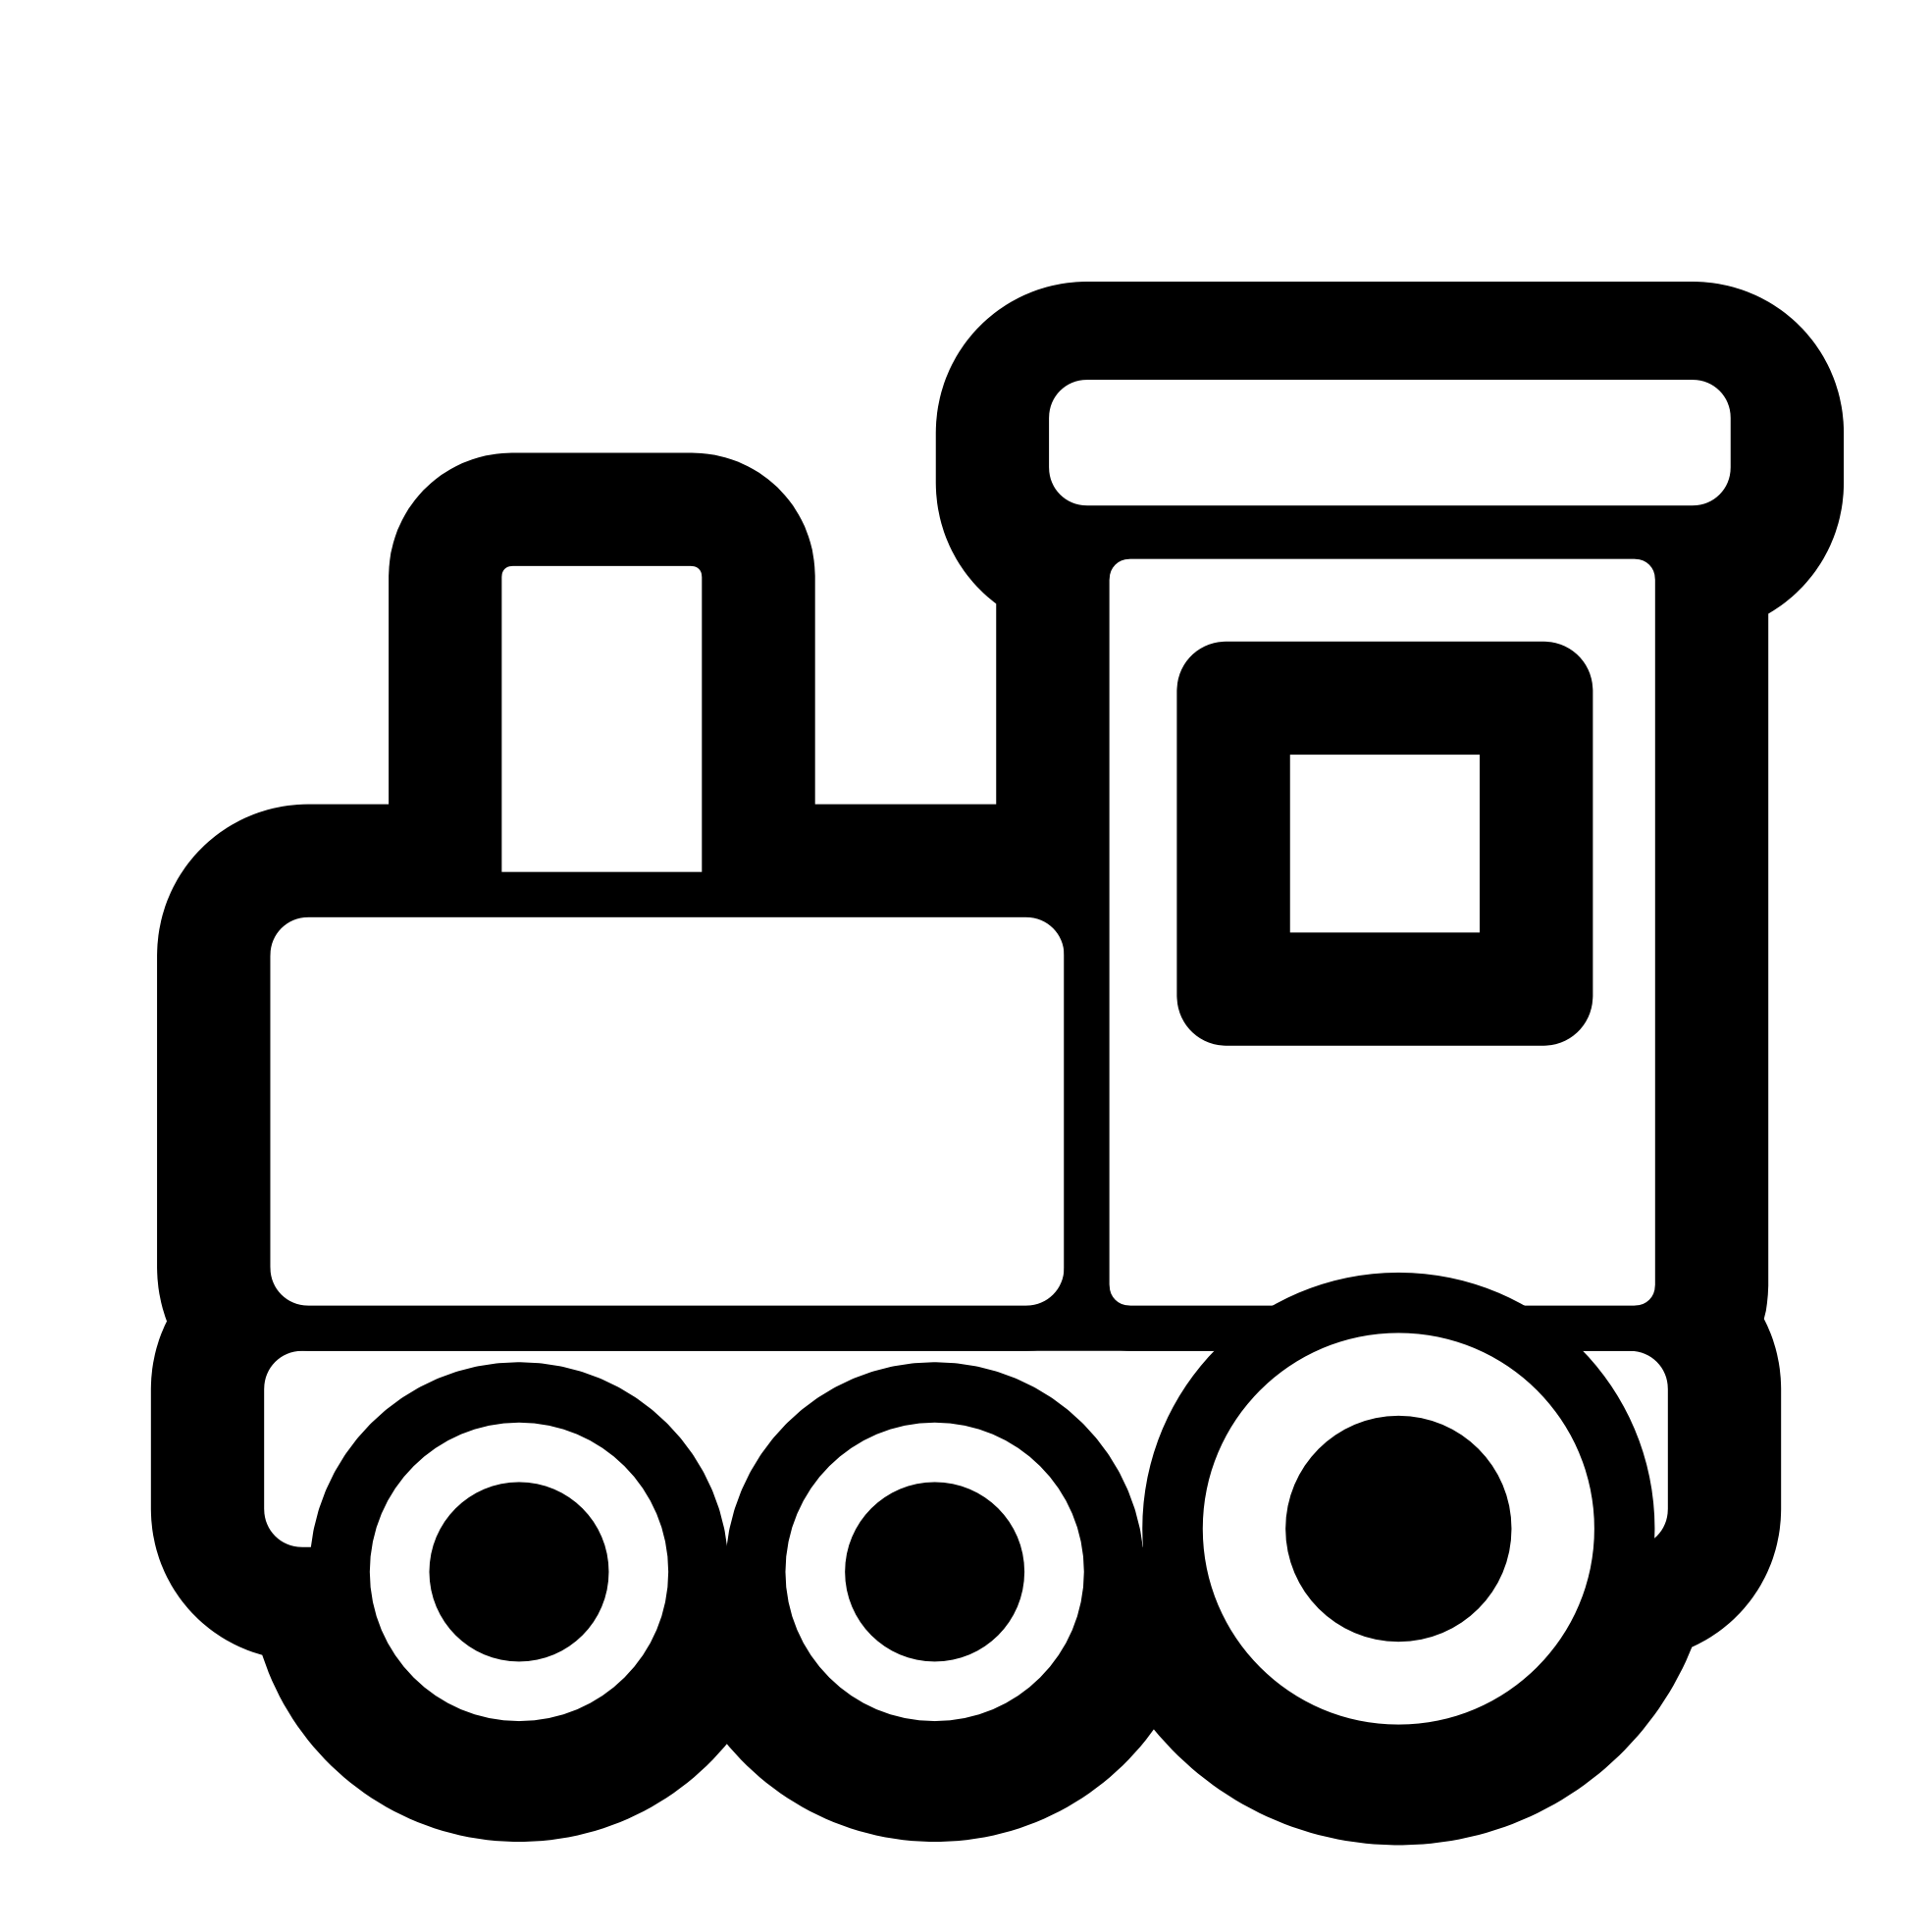 Engine clipart animated train. Toy car black and